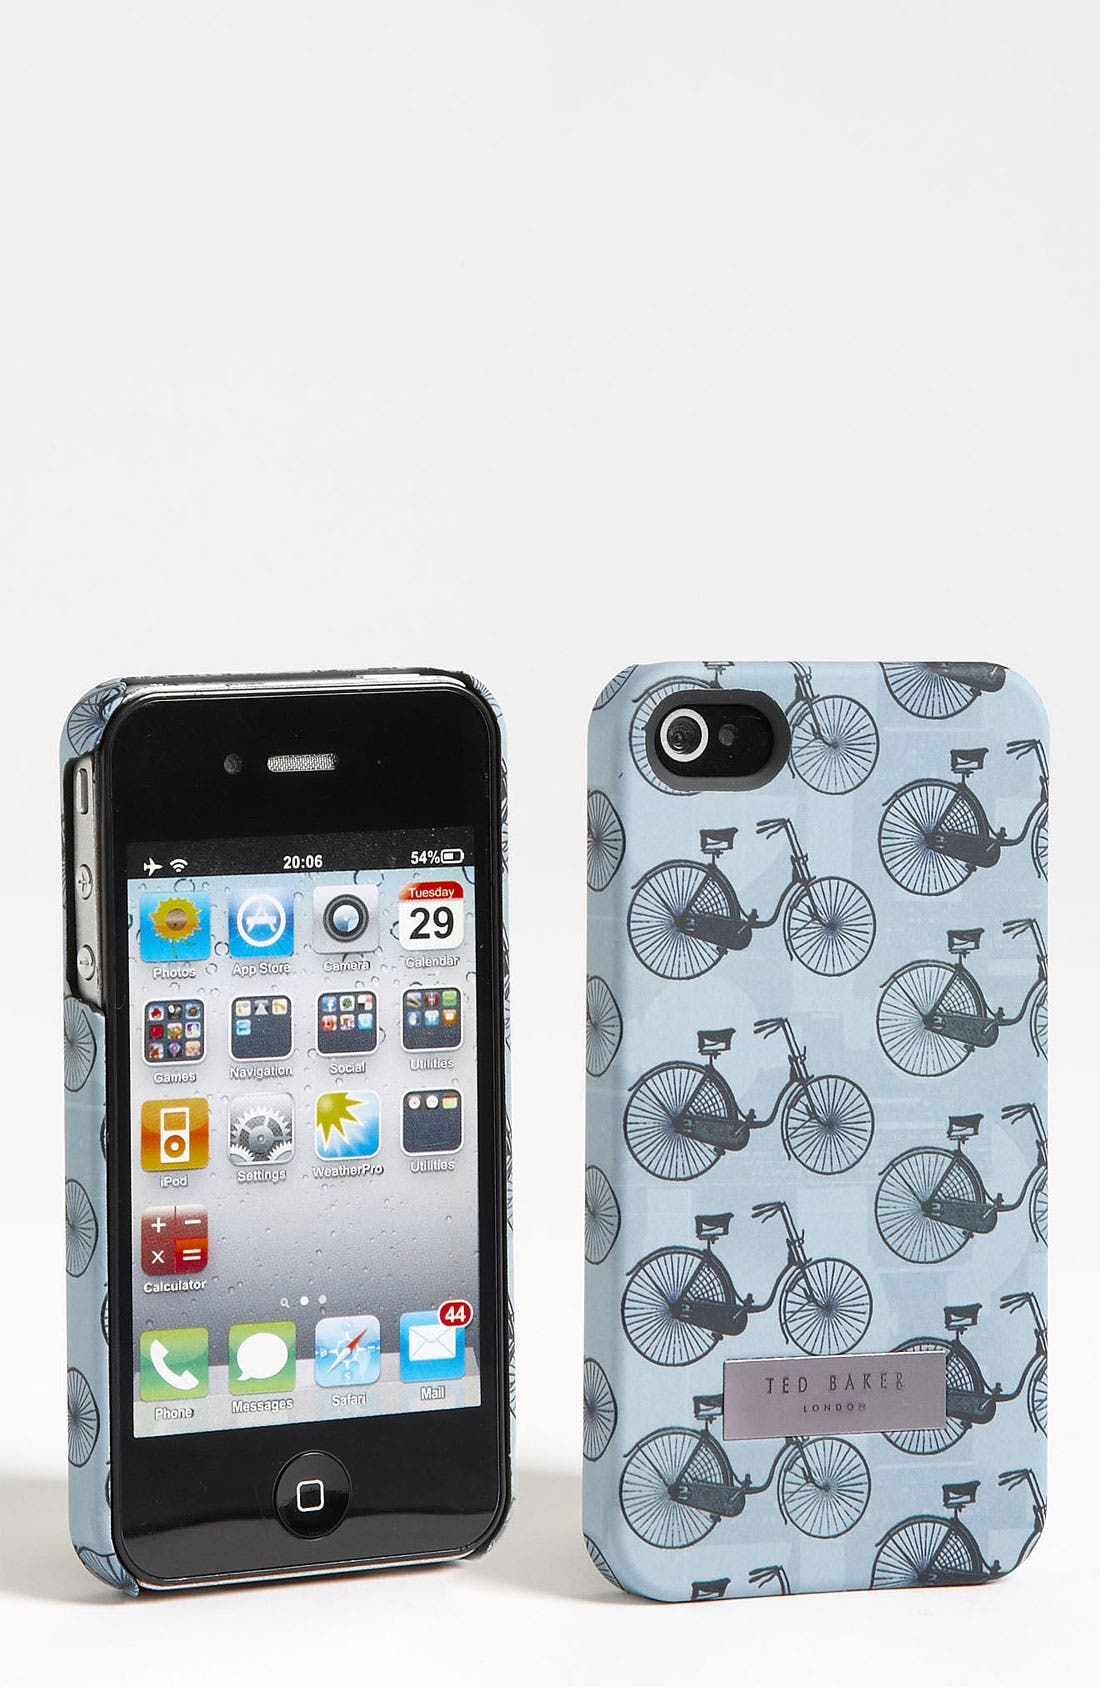 Main Image - Ted Baker London 'Bicycle' Print iPhone 4 & 4S Case